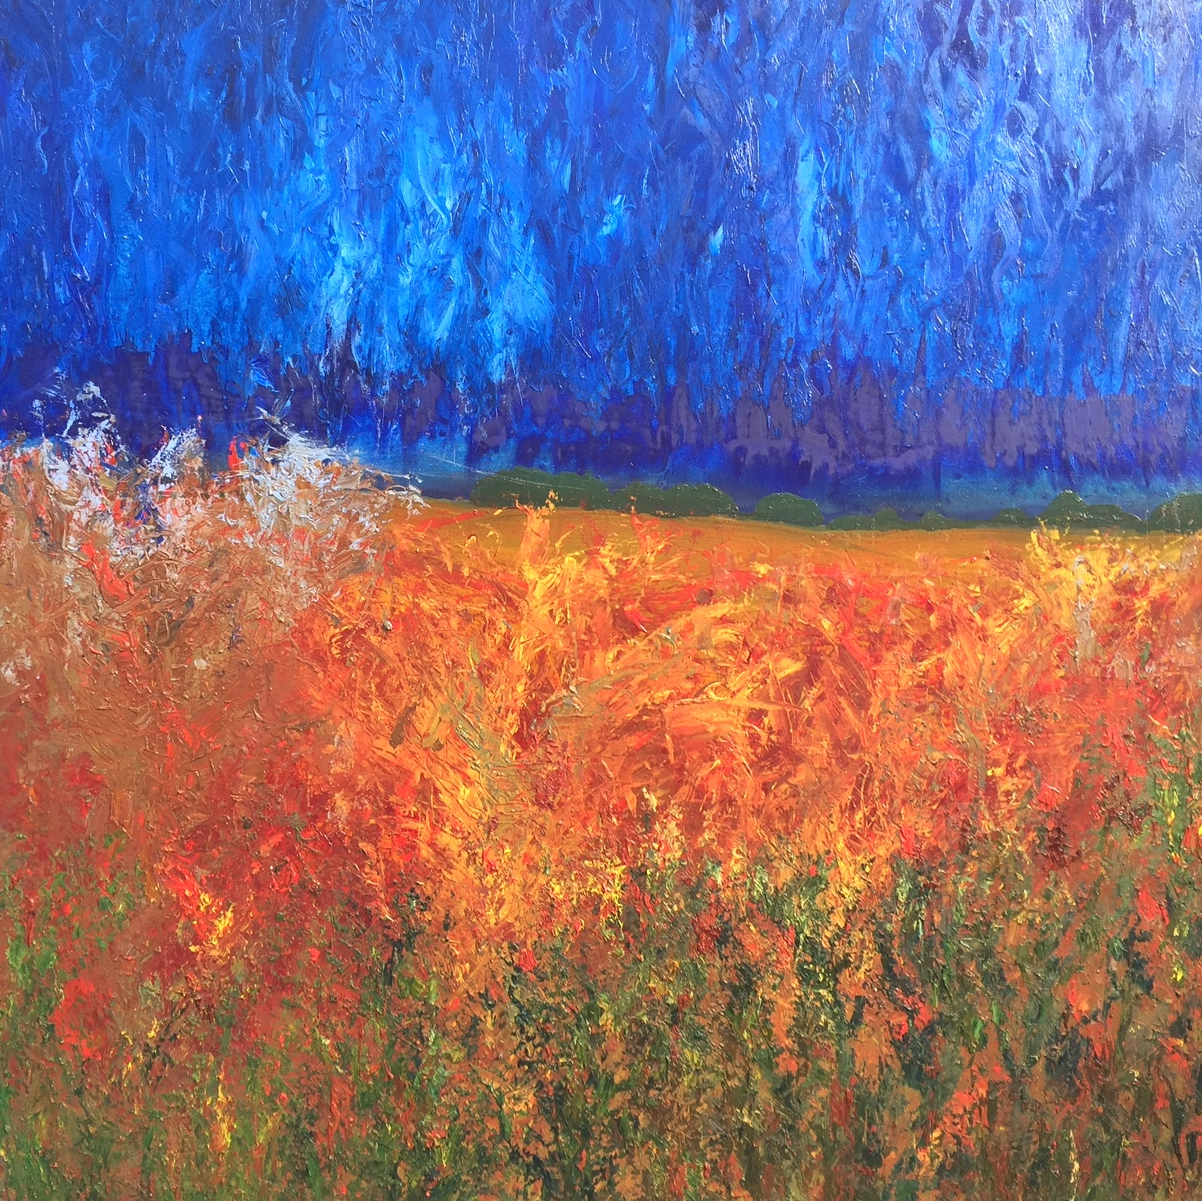 Field Of Dreams (sold out)